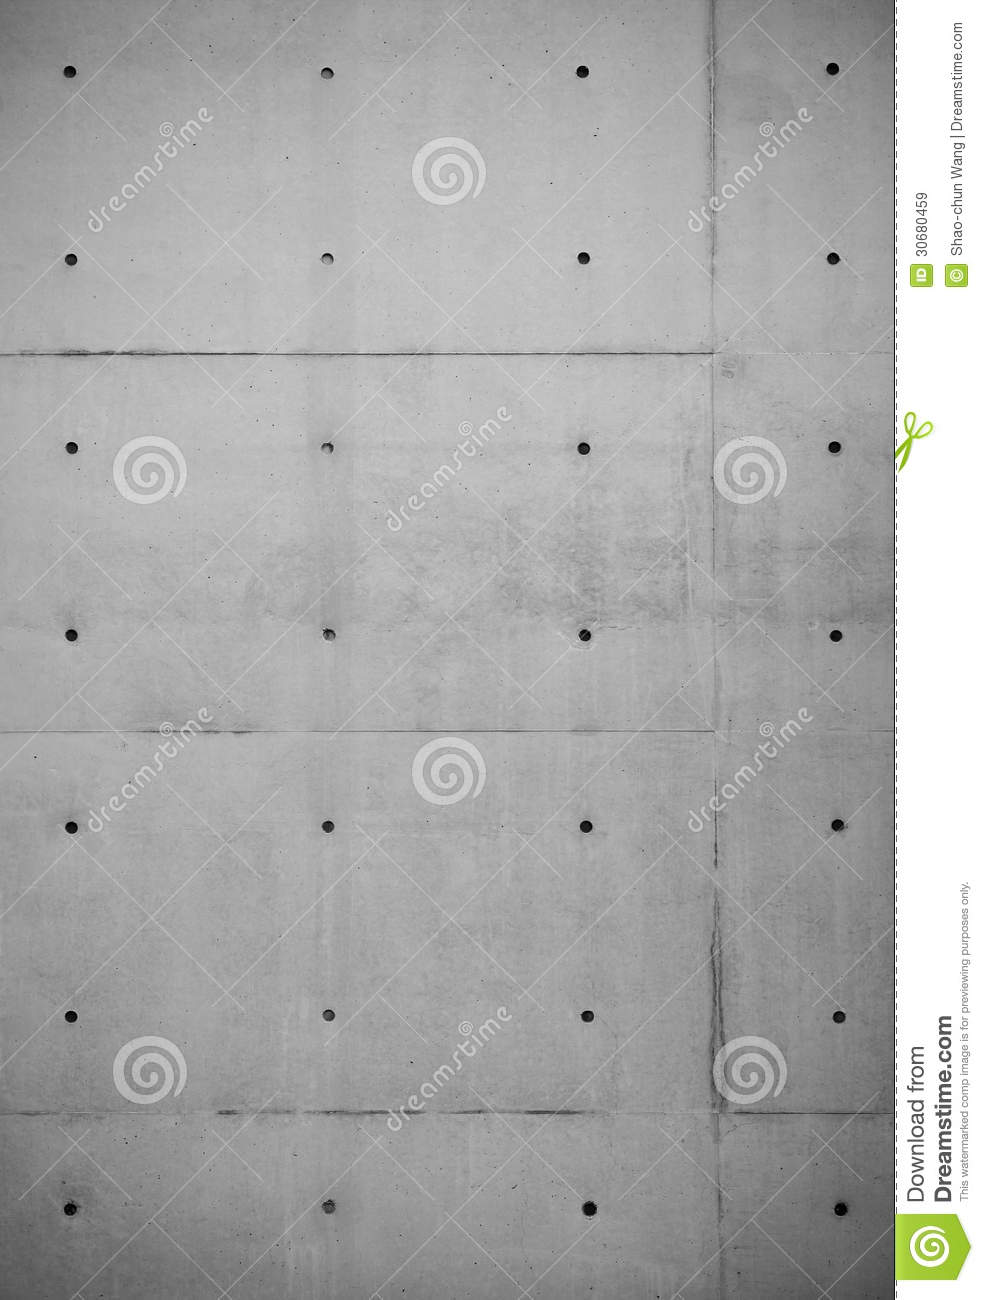 7d58708bca05 Grunge Concrete Cement Wall Stock Image - Image of material